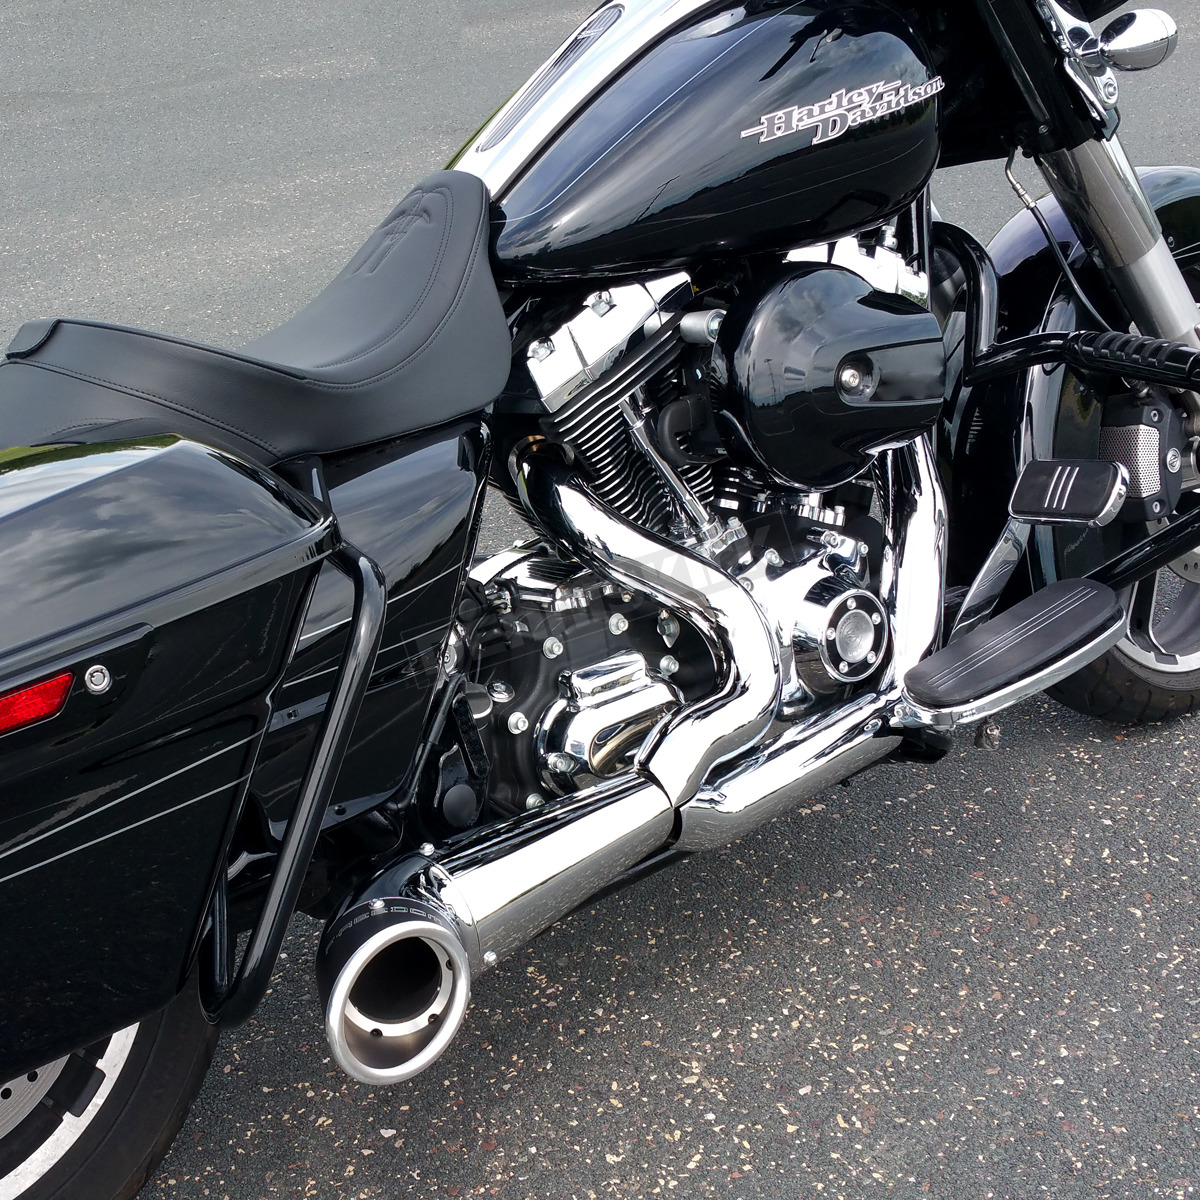 chrome black 2 into 1 turnout exhaust system hd00837